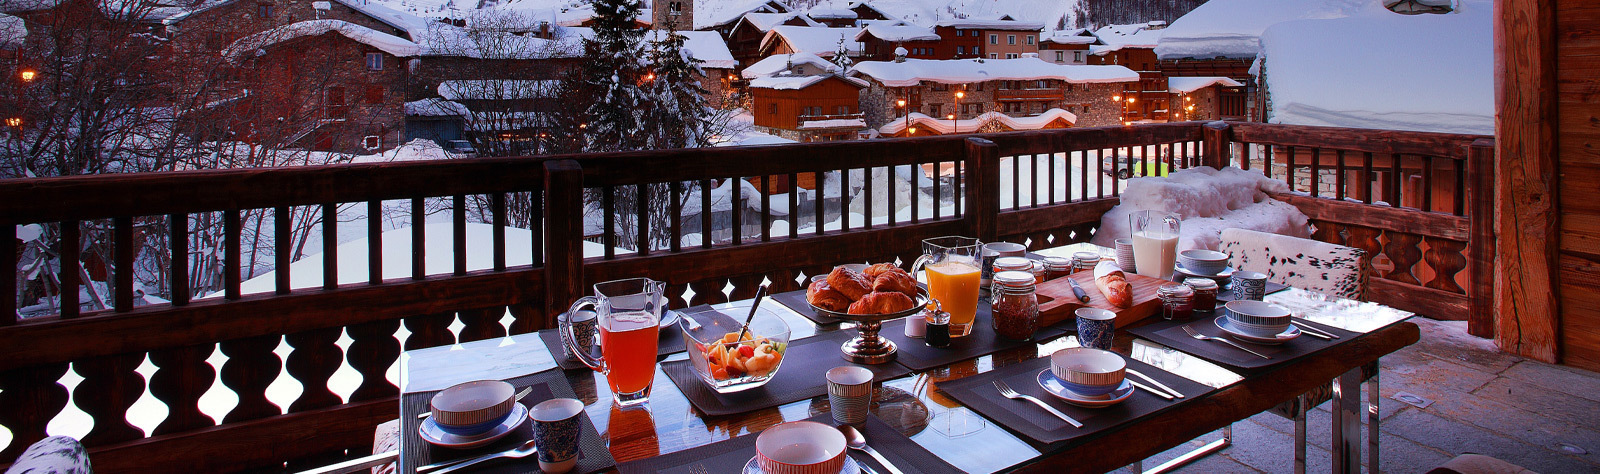 Schladming-Dachstein accommodations